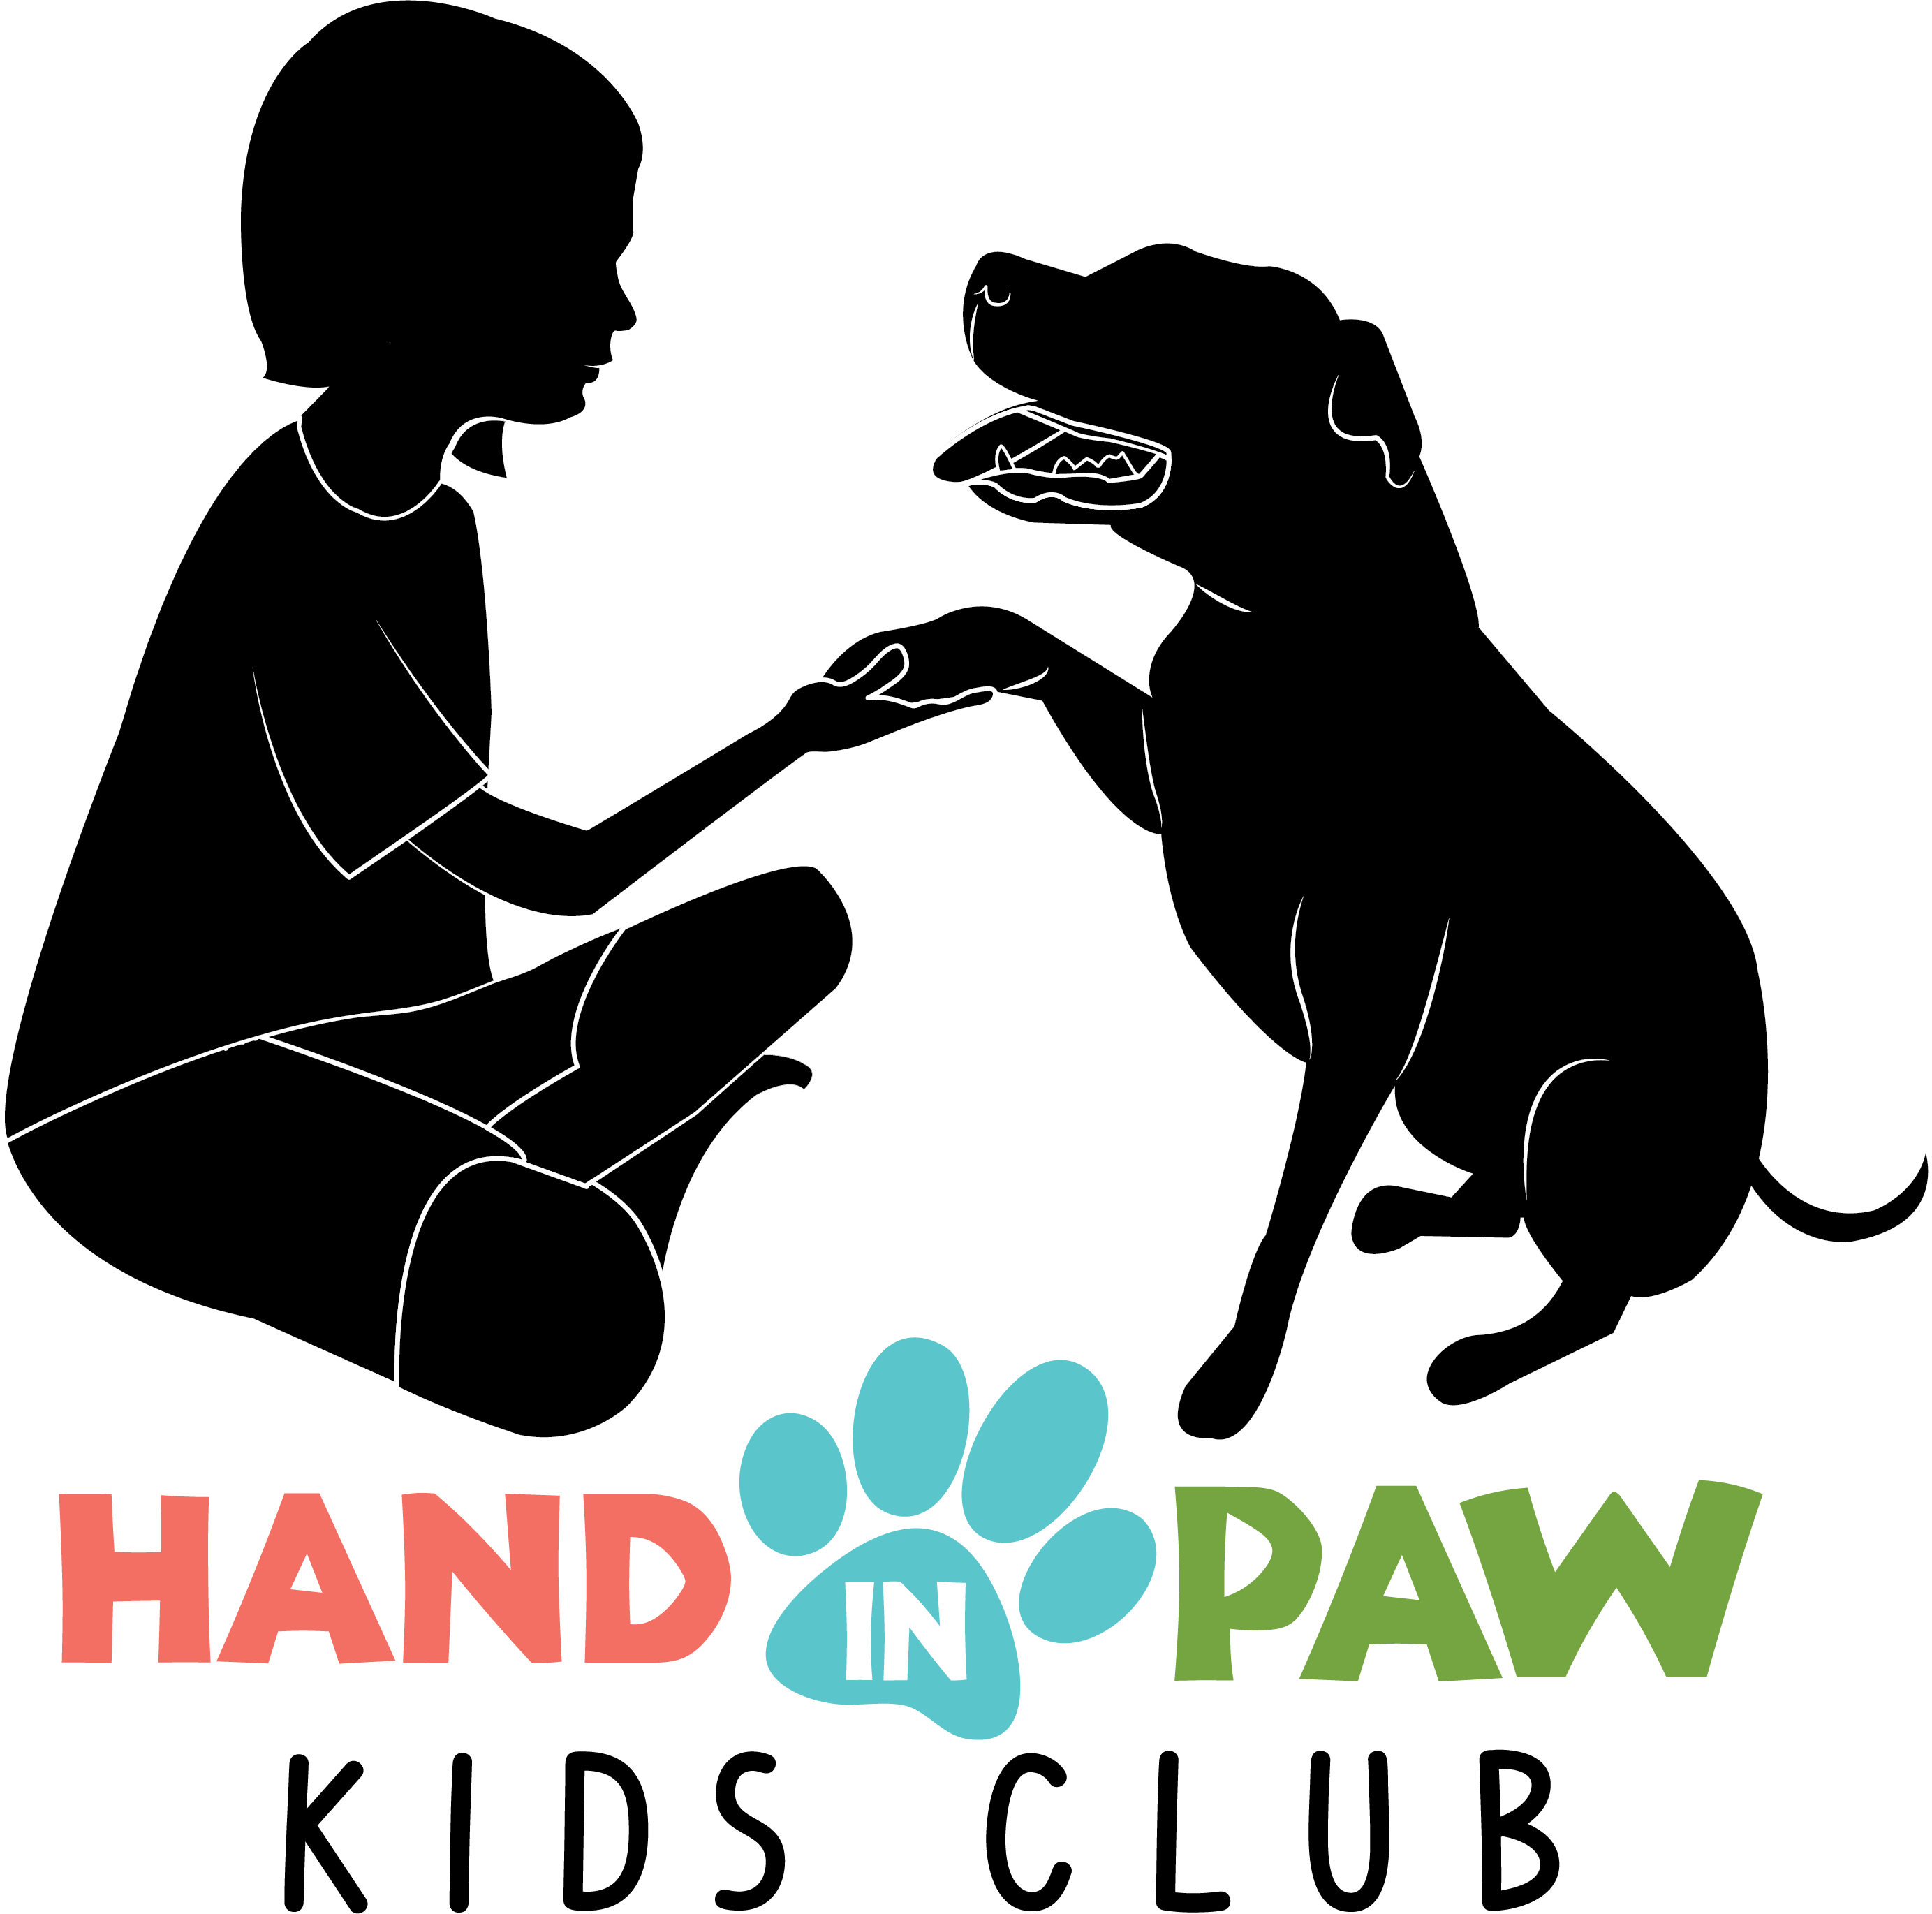 Hand in Paws Kid Club silhouettes Black with colored letters